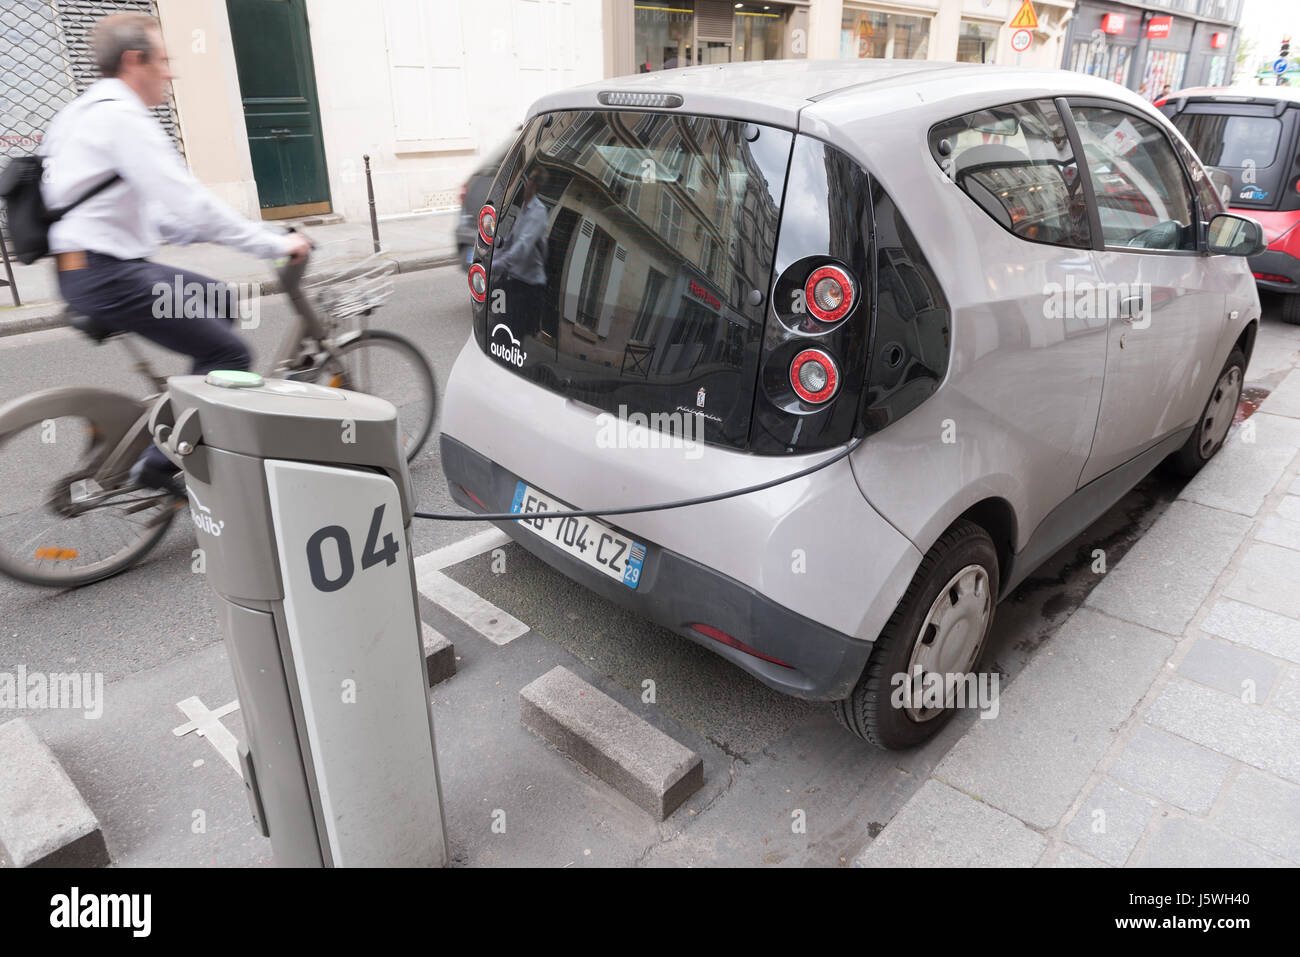 Paris, France 13th May 2017: Autolib car charging in a street of Paris with a blurry bike - Stock Image